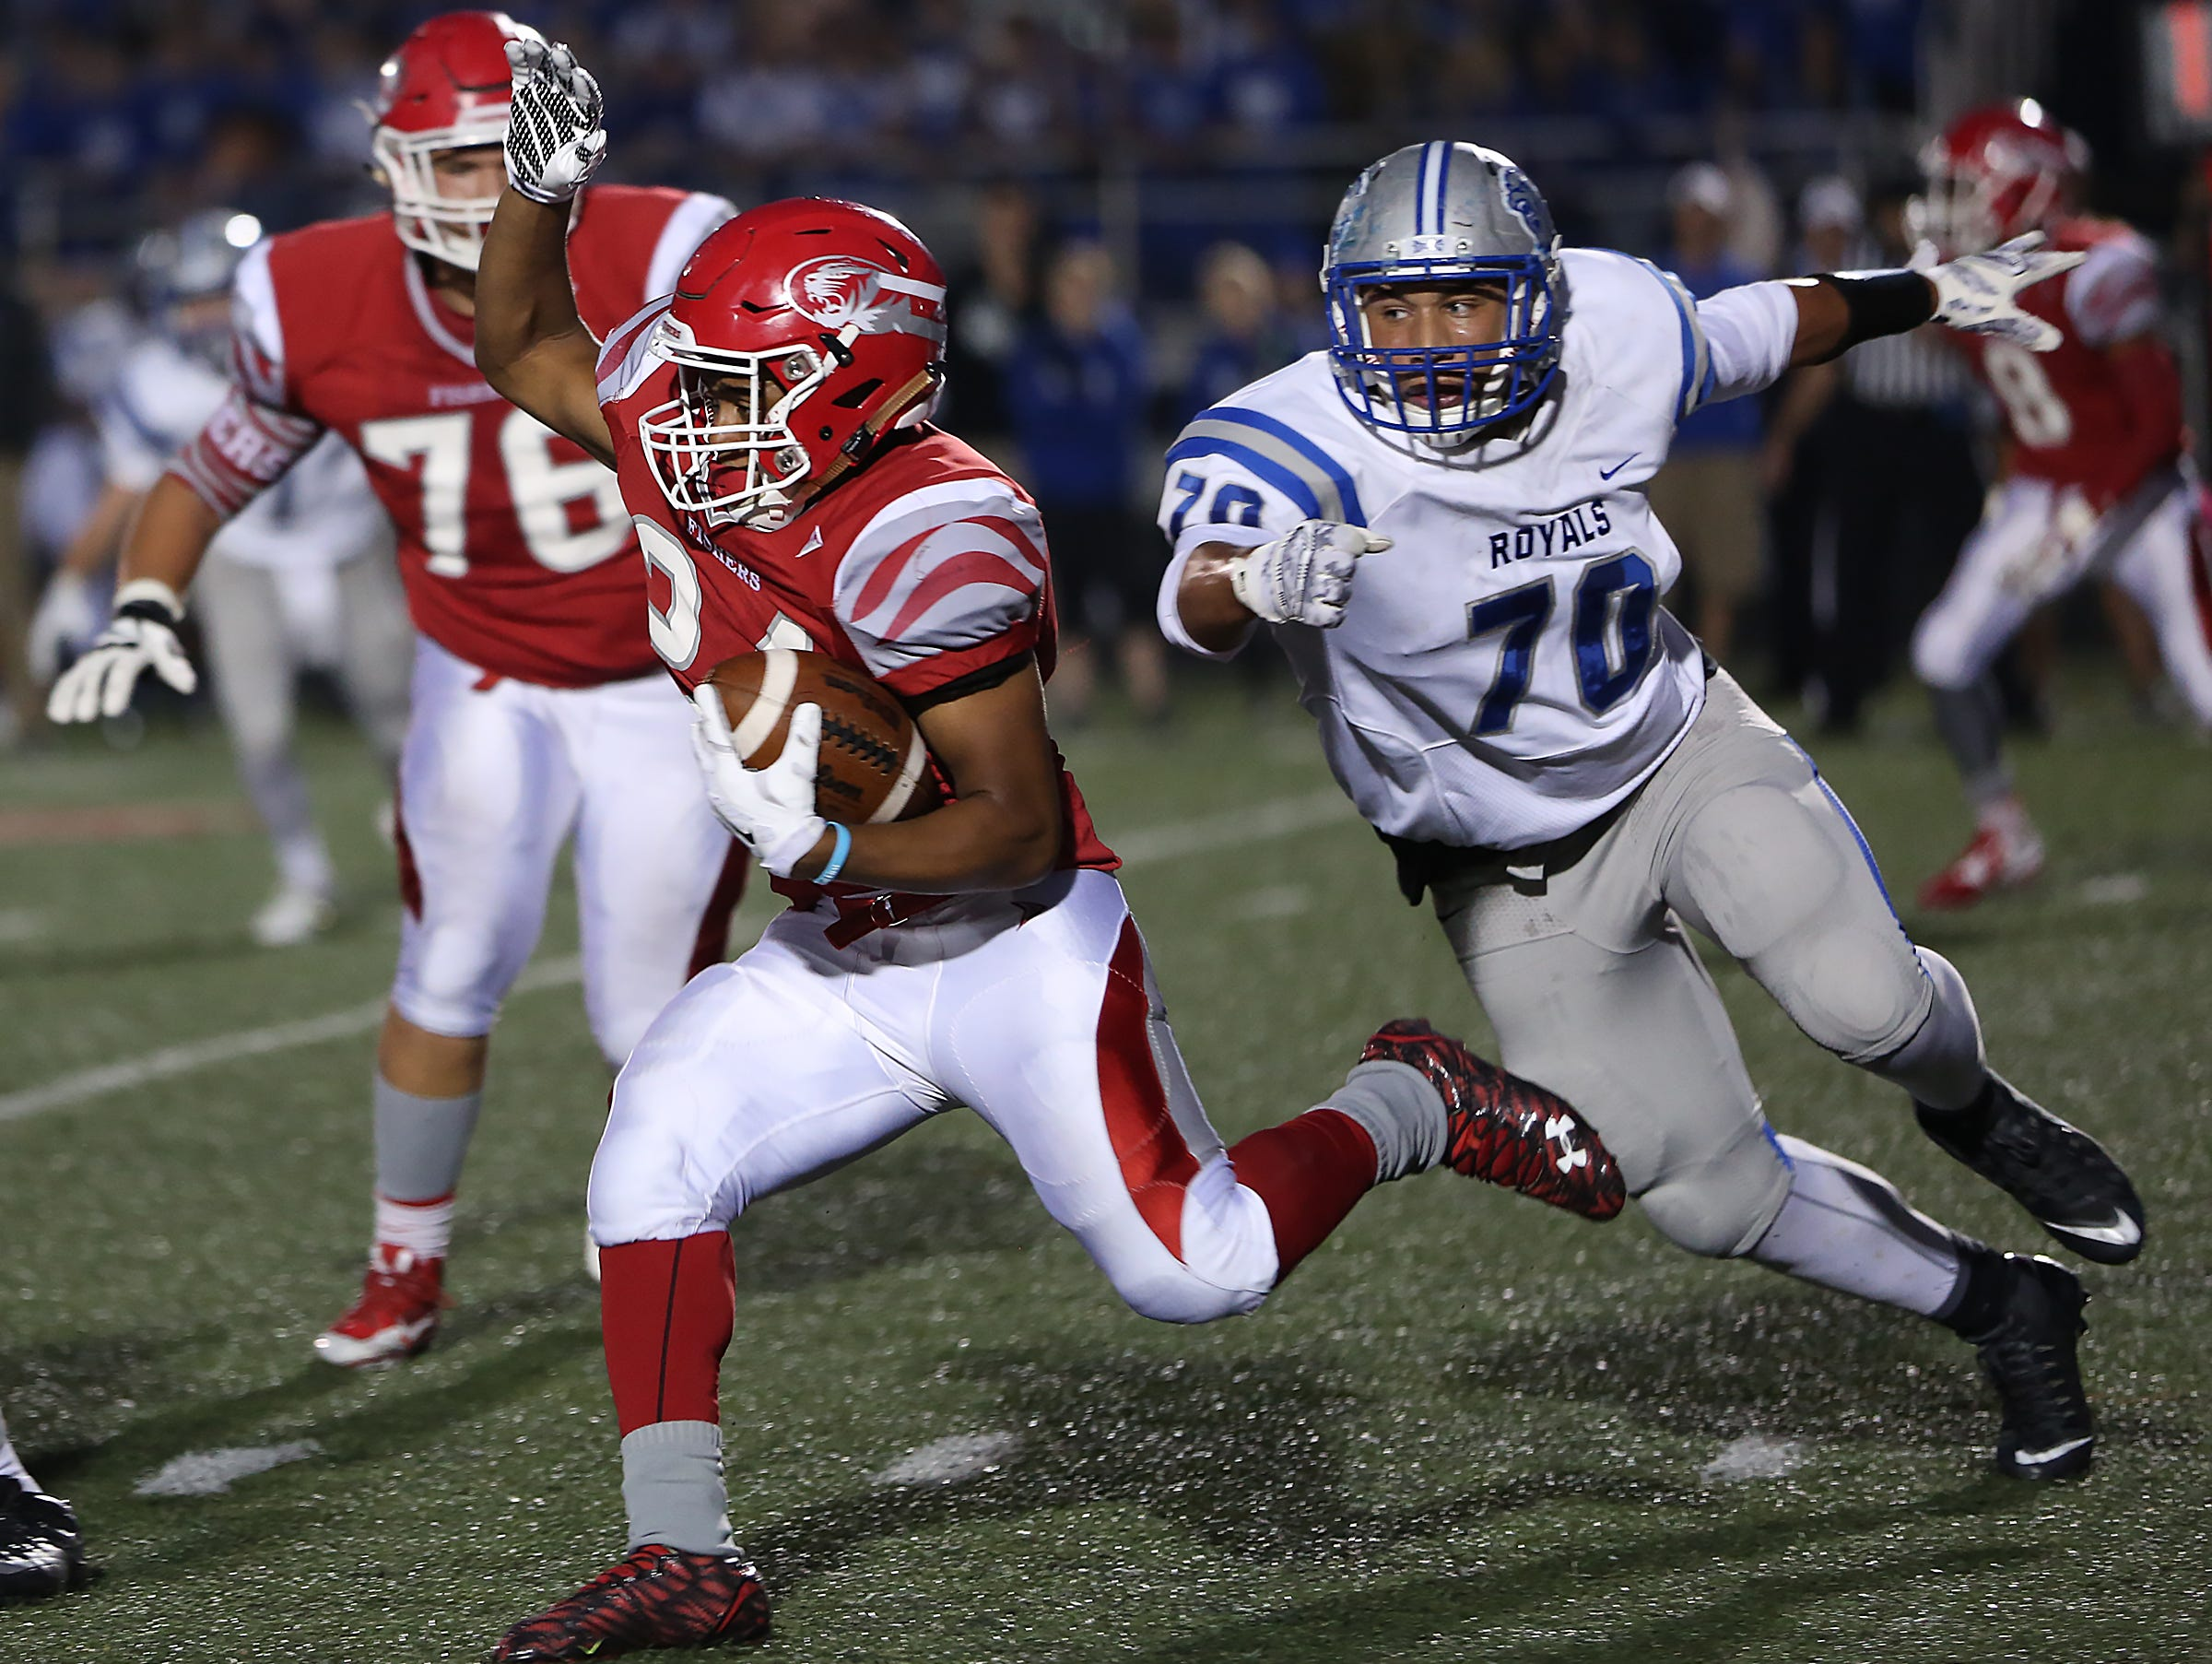 Fishers #24 Jermaine Huddleston runs for yards as HSE #70 Collin Miller comes from behind in first half action during the high school football sectionals Round 1 game of Hamilton Southeastern at Fishers, Friday, October 23, 2015. Fishers leads 24-7 at the half.